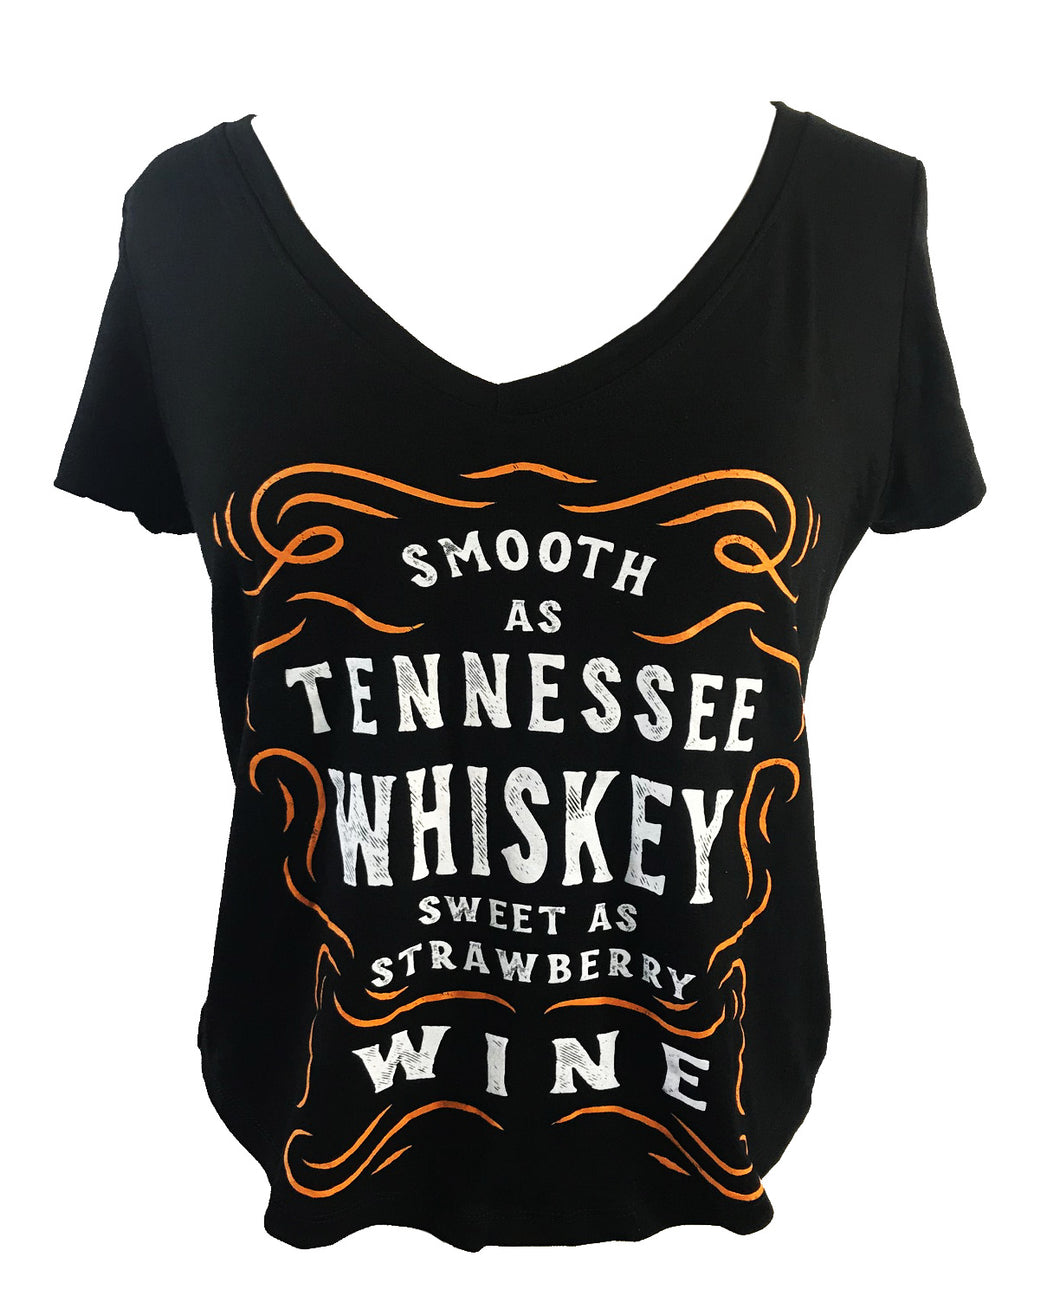 SMOOTH AS TENNESSEE WHISKEY SHORT SLEEVE V NECK - Trailsclothing.com